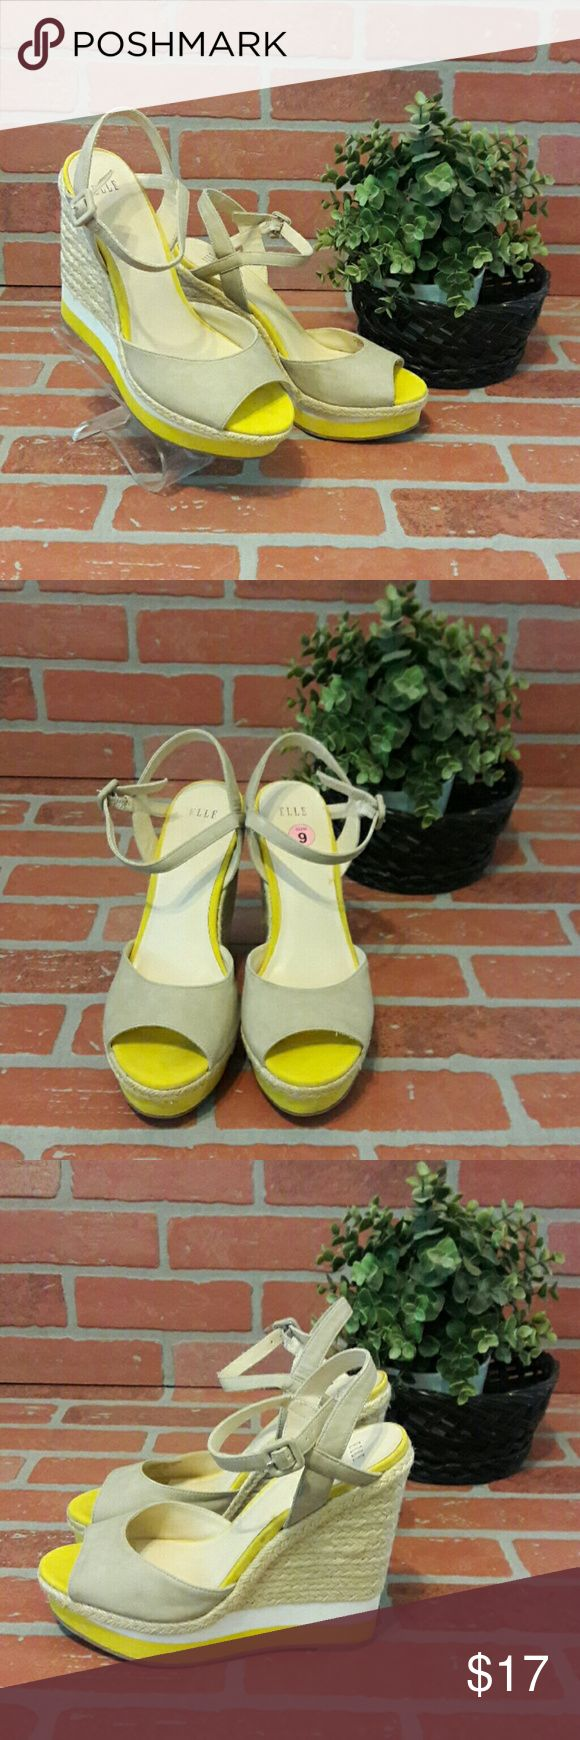 """ELLE Wedge Sandals Need a boost? With these 5.5"""" wedge you'll be the right height for your date. Peep toe, ankle strap, braided wedge with stripes. Gently worn, priced accordingly.   Brand: ELLE Size: 9 Made in China   Yellow/White/Tan  Please ask any & all questions before purchasing. Elle Shoes Wedges"""